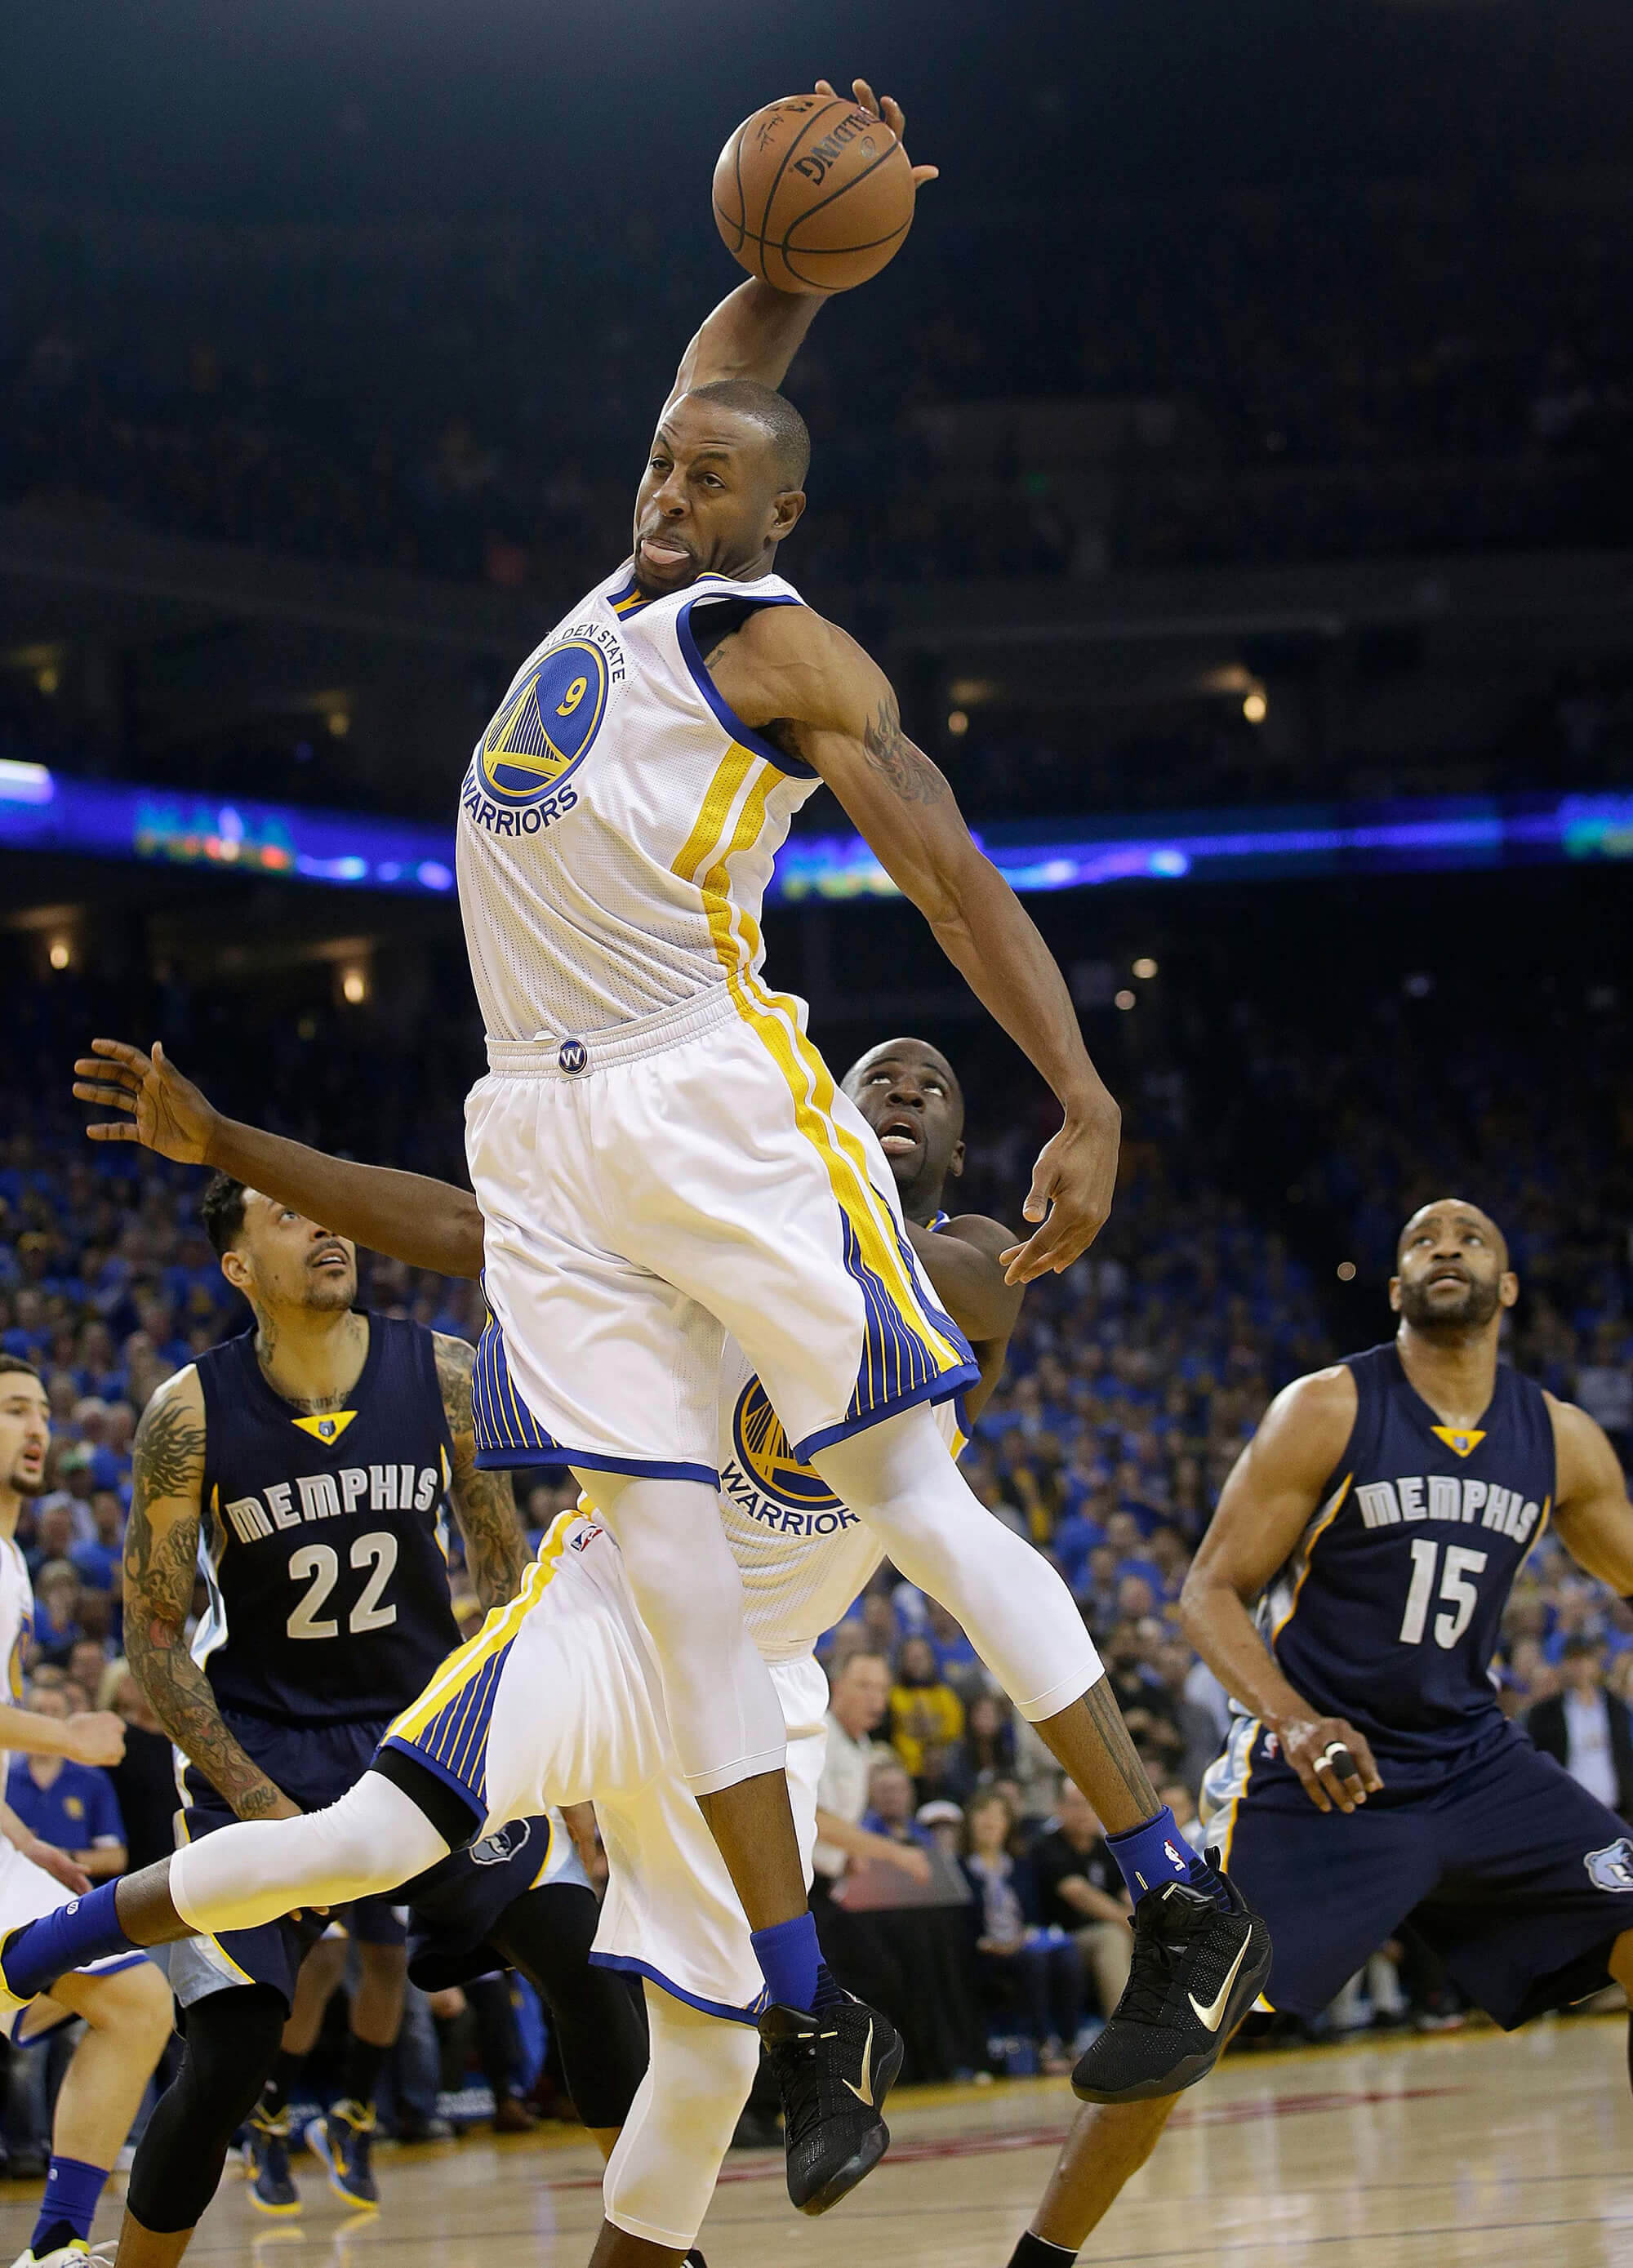 Iguodala of the Golden State Warriors dunking